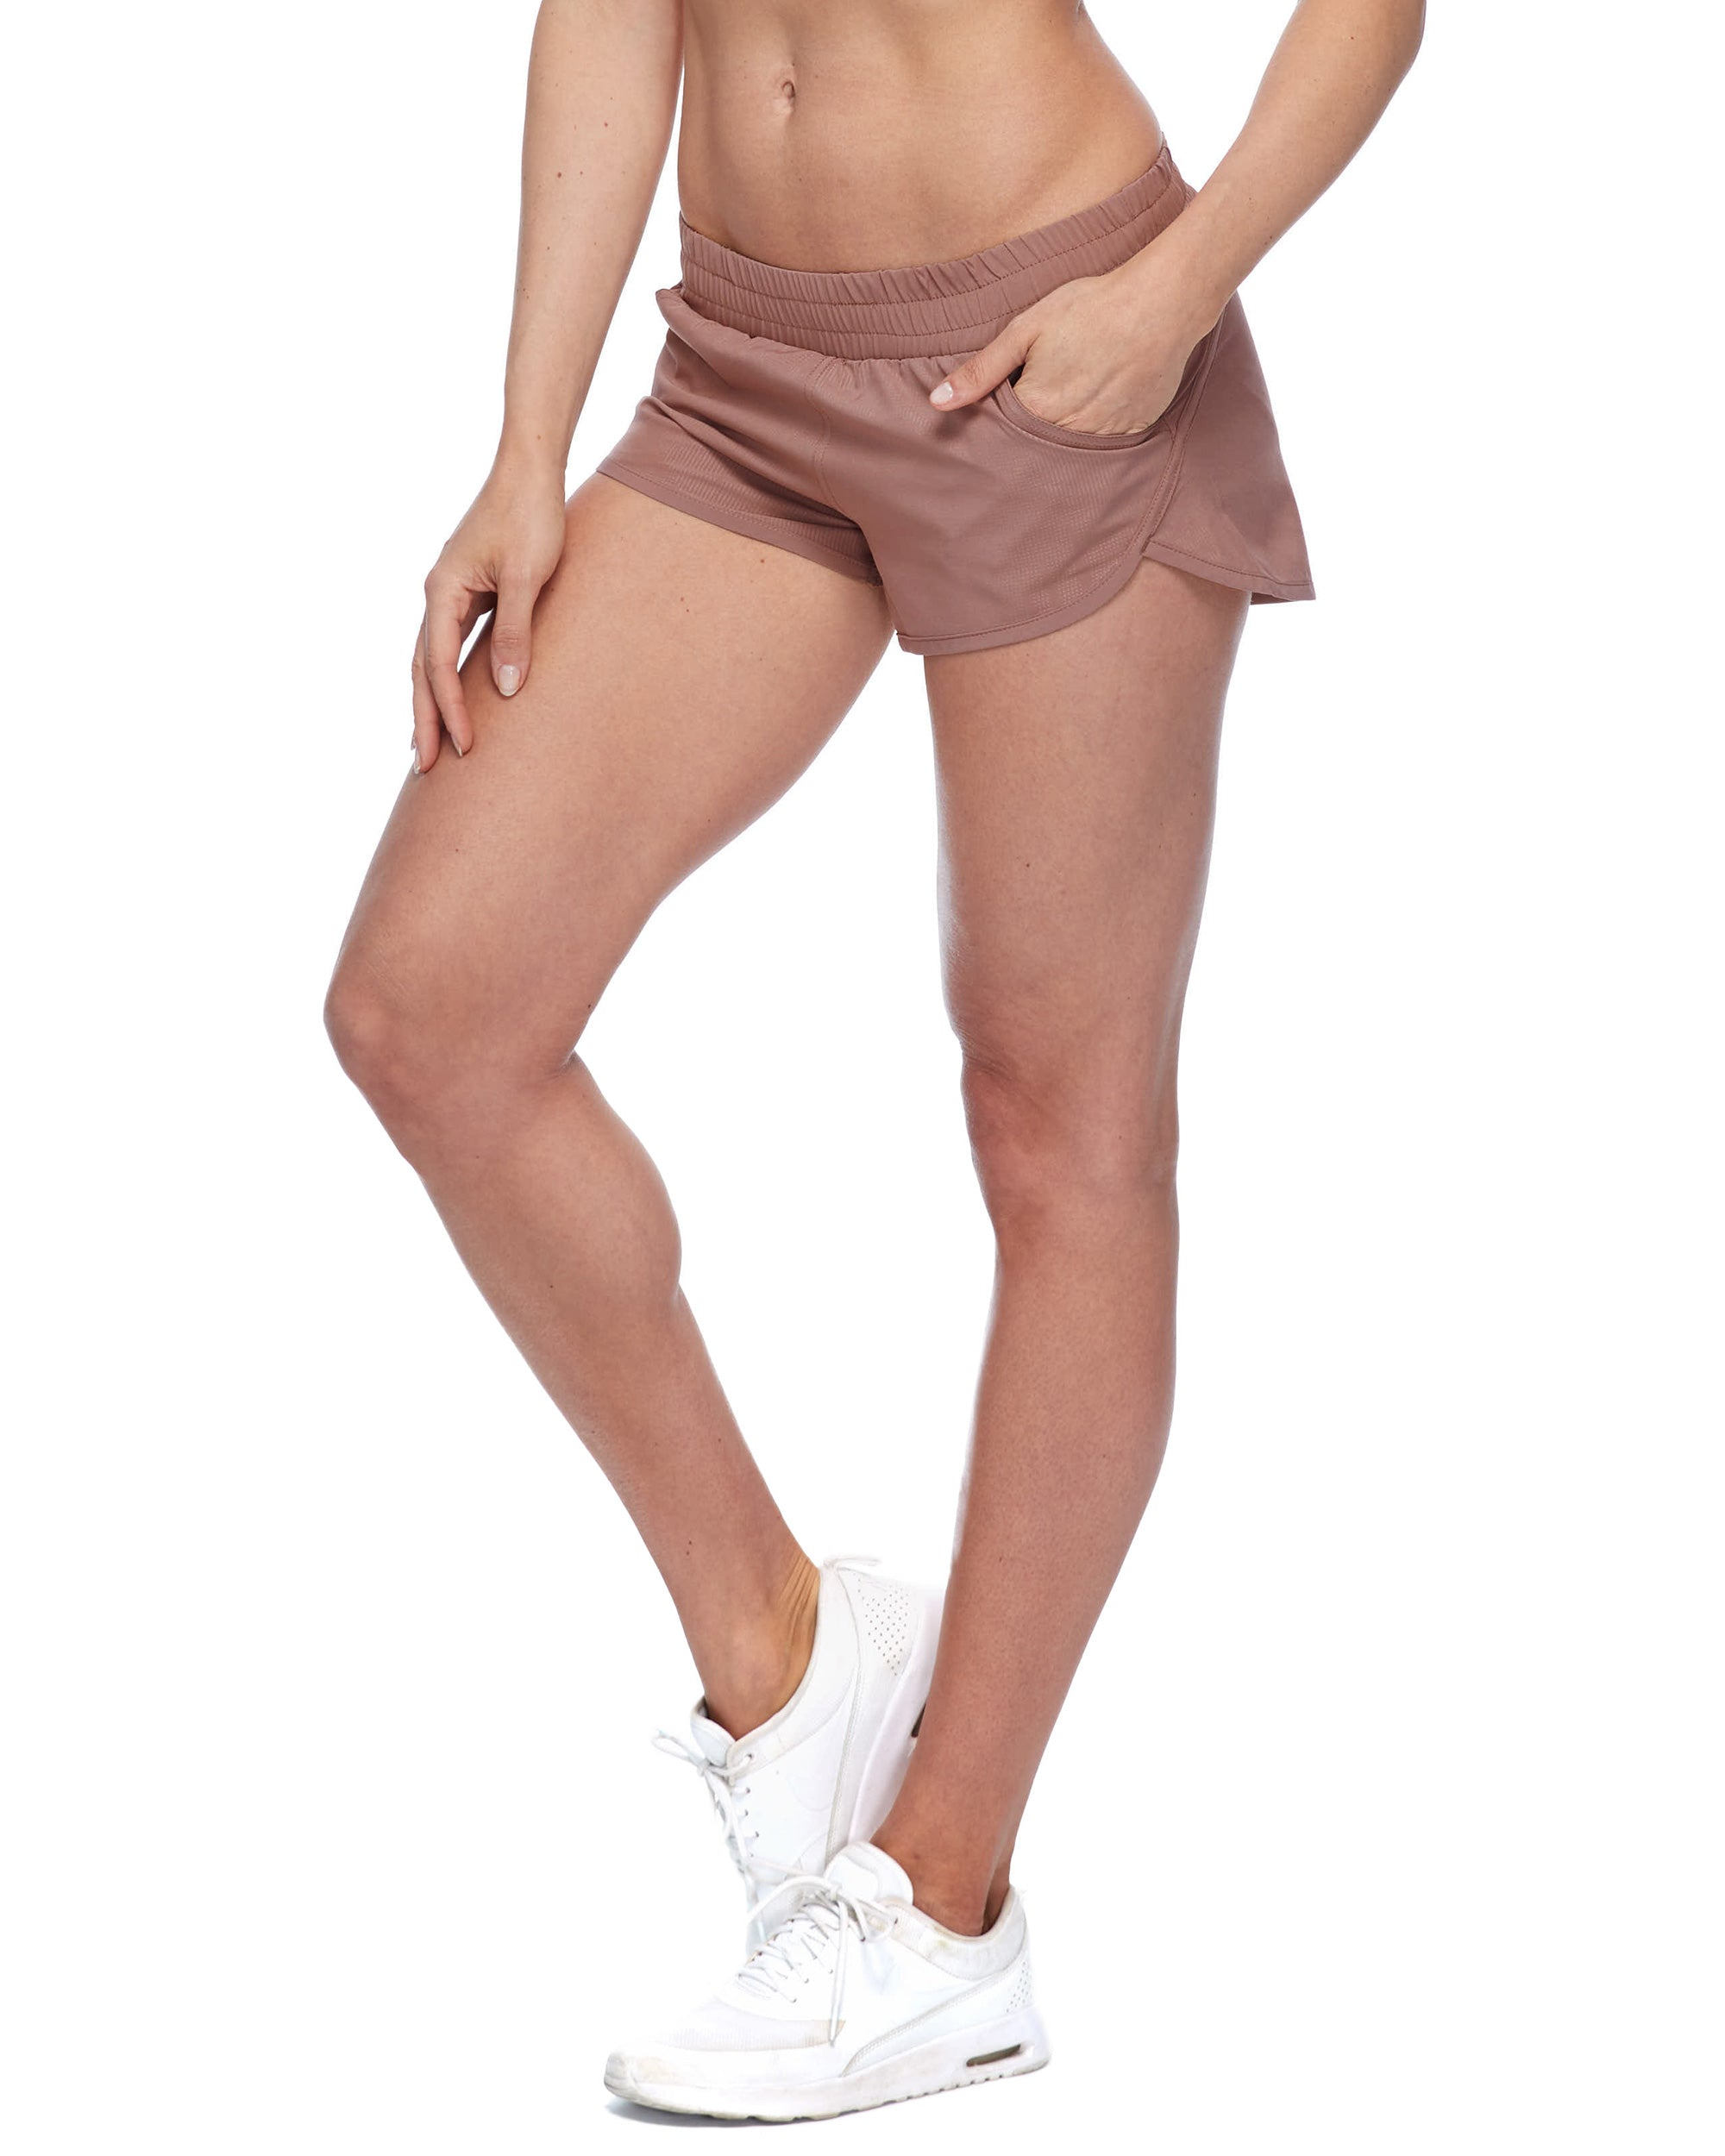 Terra Eco Women's Short - Mocha